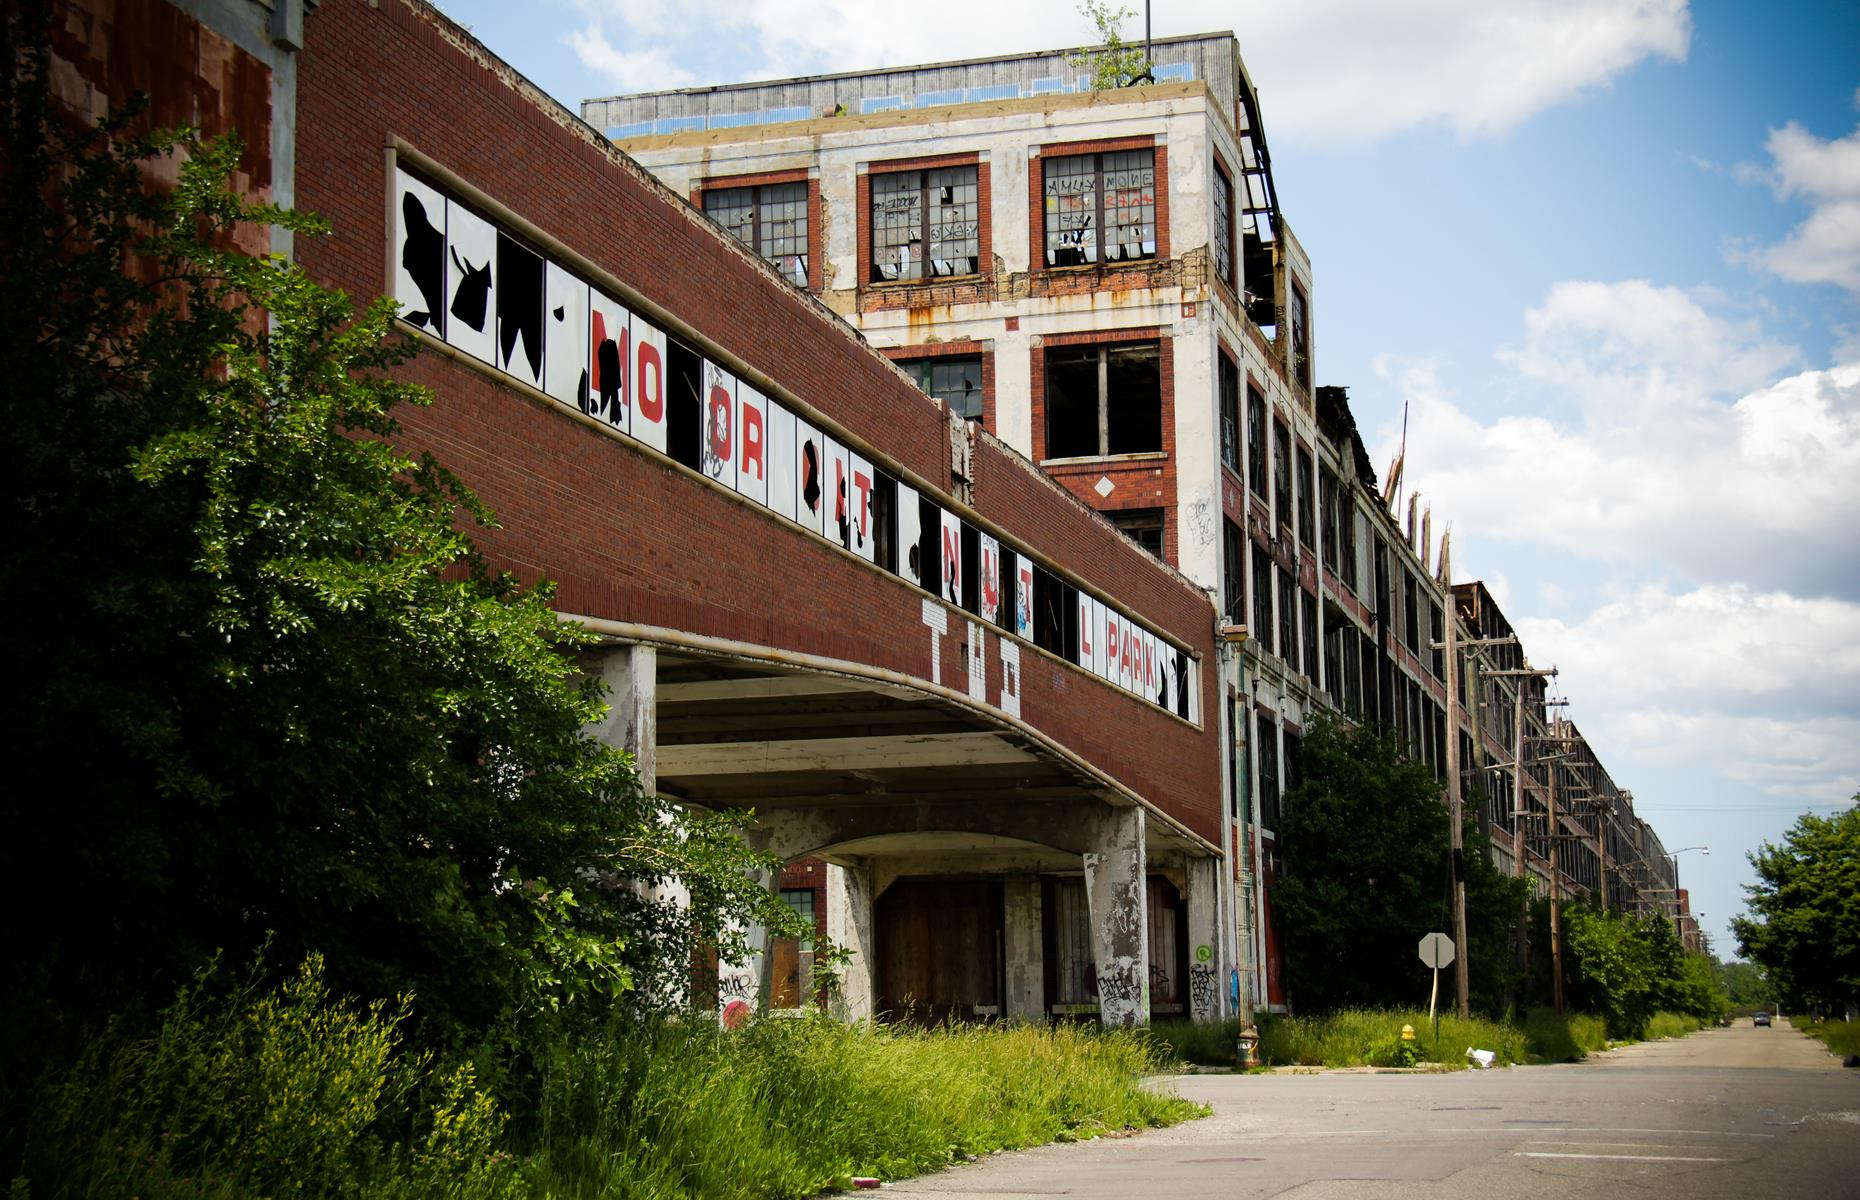 Slide 44 of 101: This huge complex of industrial buildings began life in the early 1900s and served as a headquarters for the Packard Automotive Company. The plant boomed as Detroit gained its reputation as the Motor City – the greatest place for car manufacturing in the States. However, the business struggled after World War II and Packard had folded by 1958.